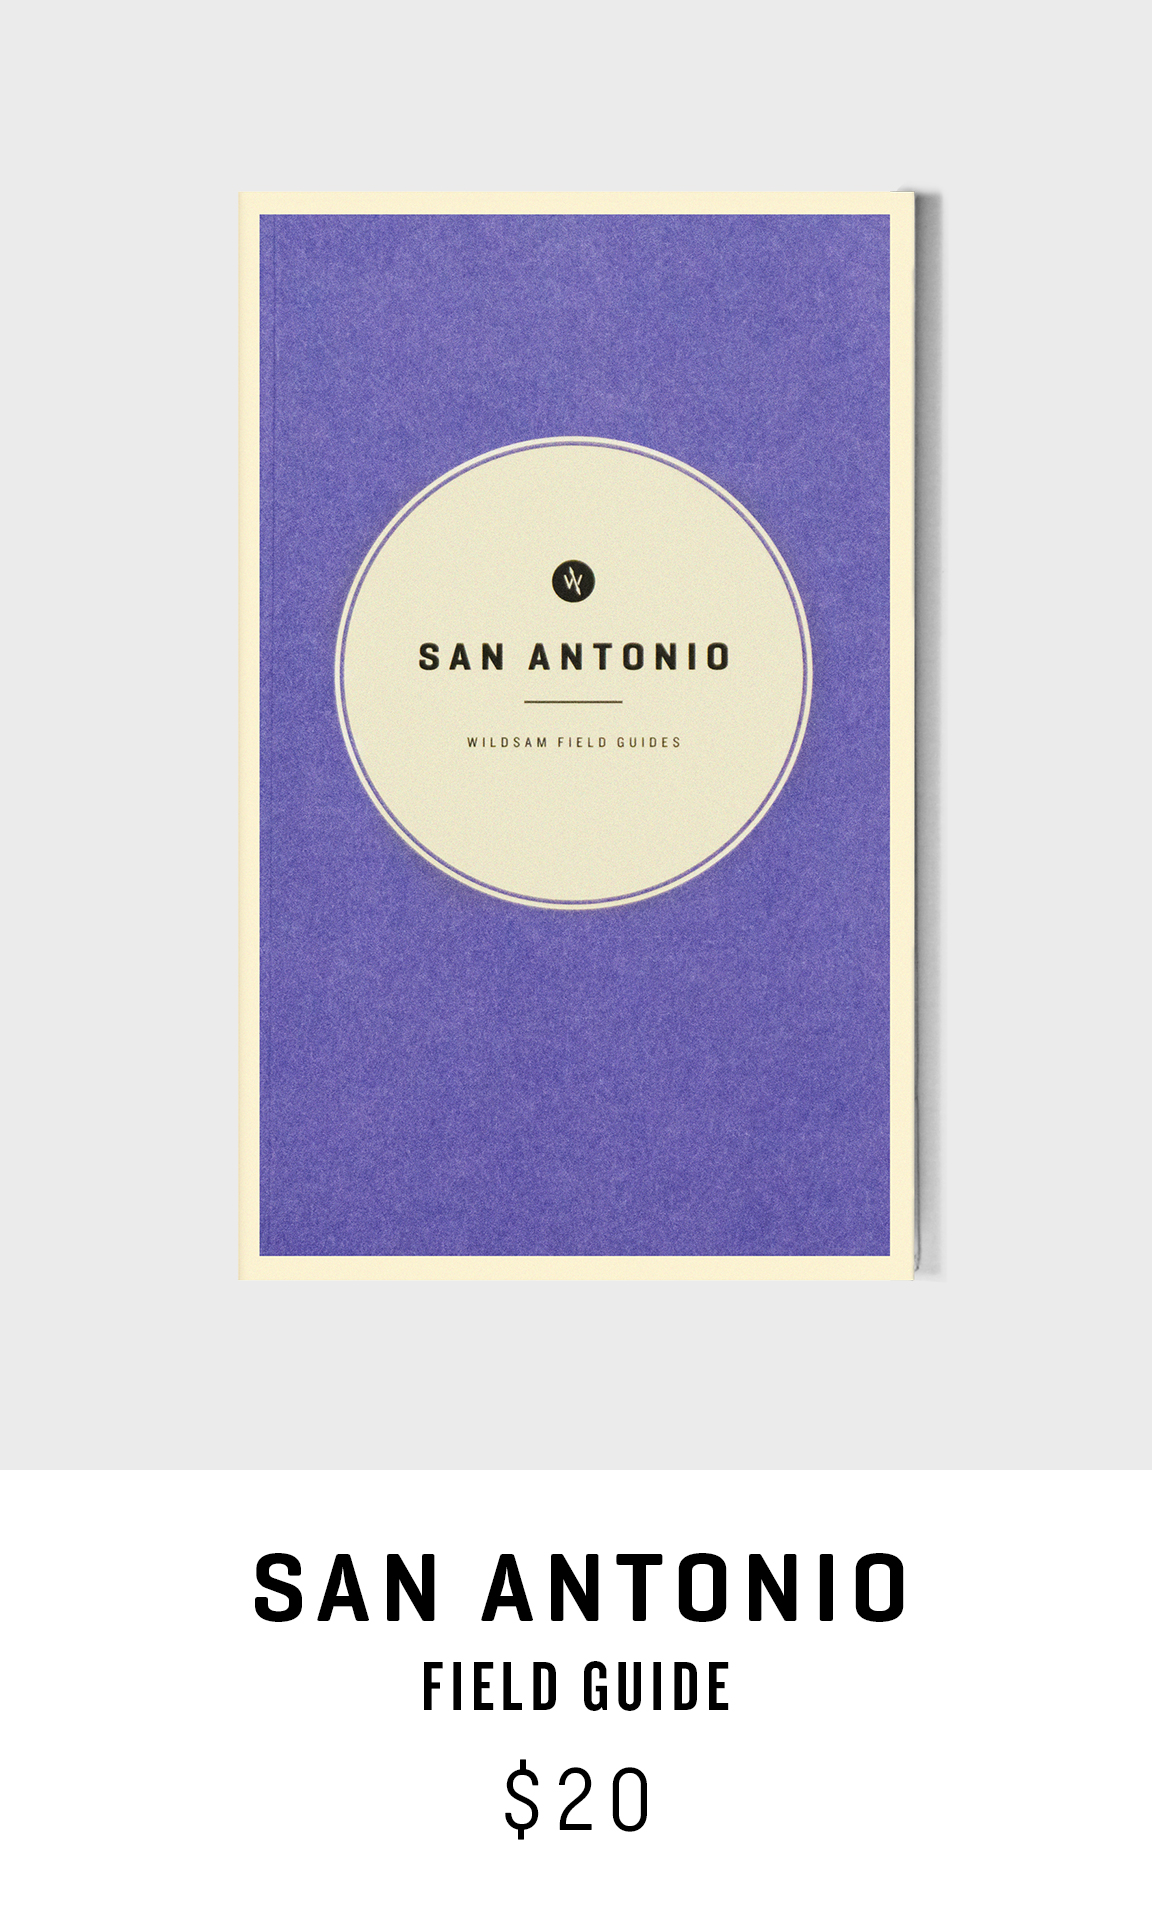 San_Antonio-Product-CARD.jpg